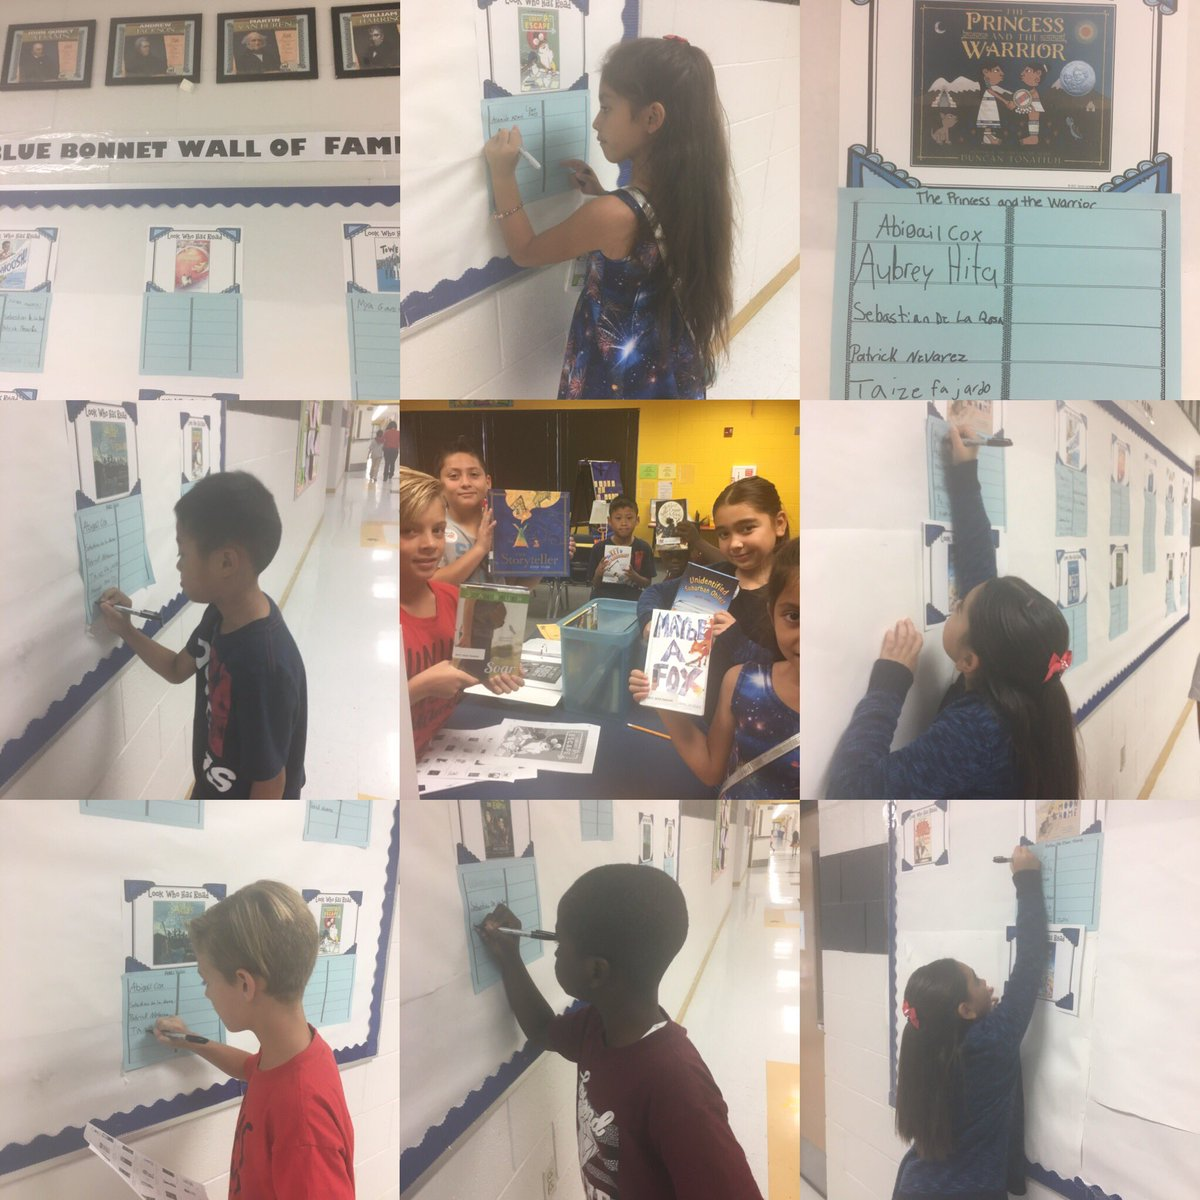 Cougar Blue Bonnet Reading Club signing their name on our Reading Wall of Fame. @TBABooks #SISD_READS #wonder  <br>http://pic.twitter.com/jSCbskVqRj